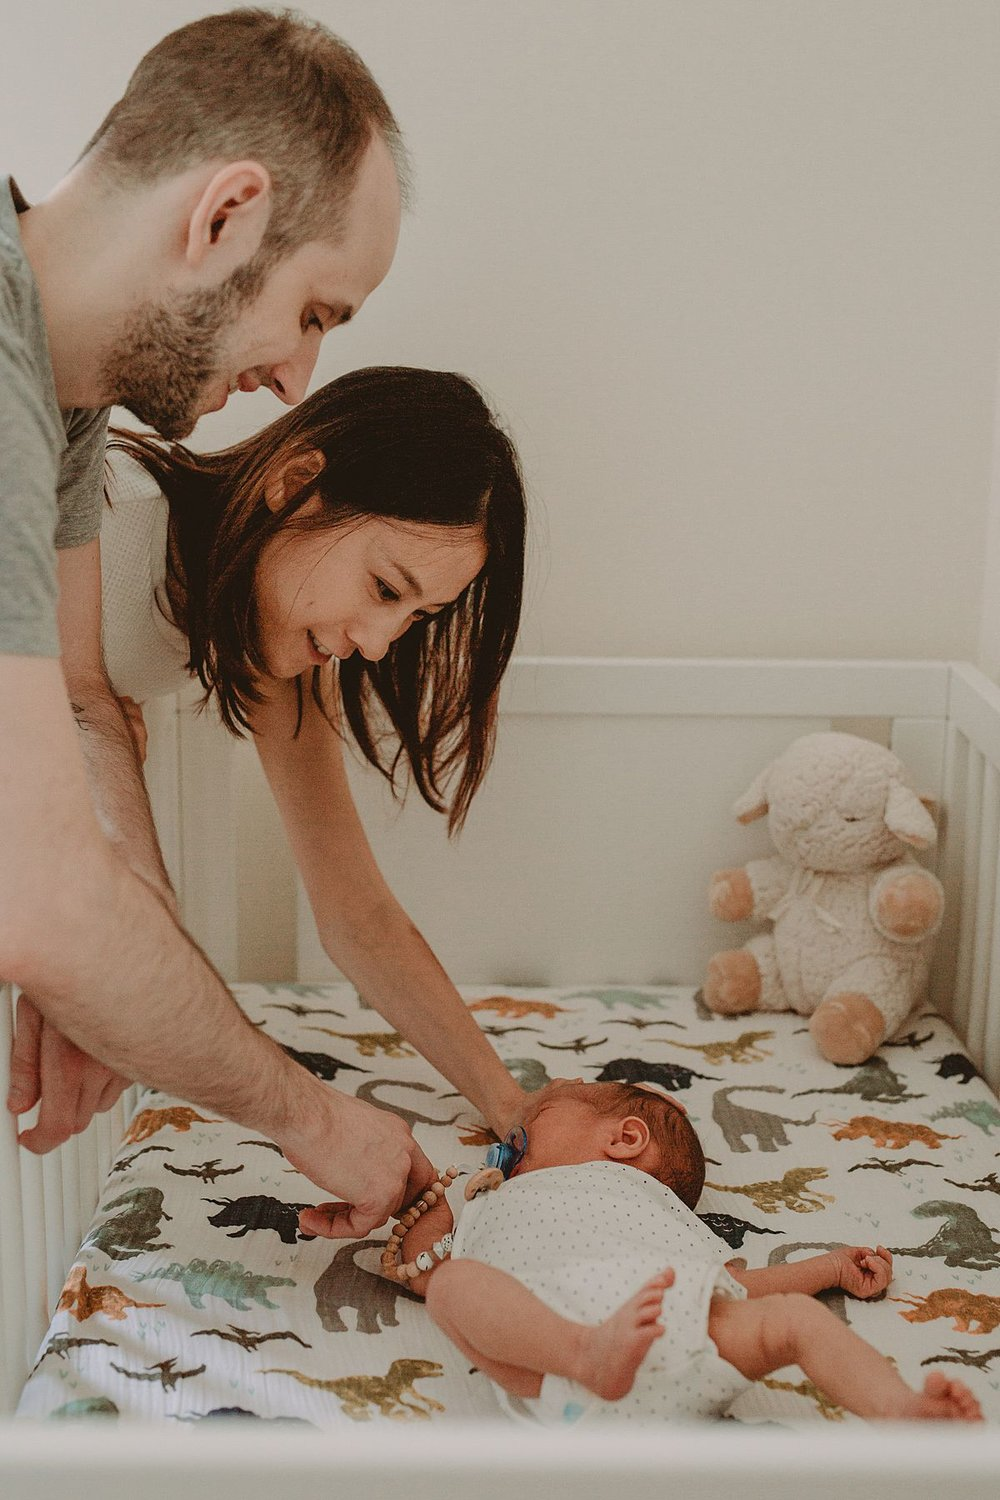 mom and dad caressing newborn as he tries to sleep in crib on his dinosaur sheets. photo by nyc family photographer krystil mcdowall